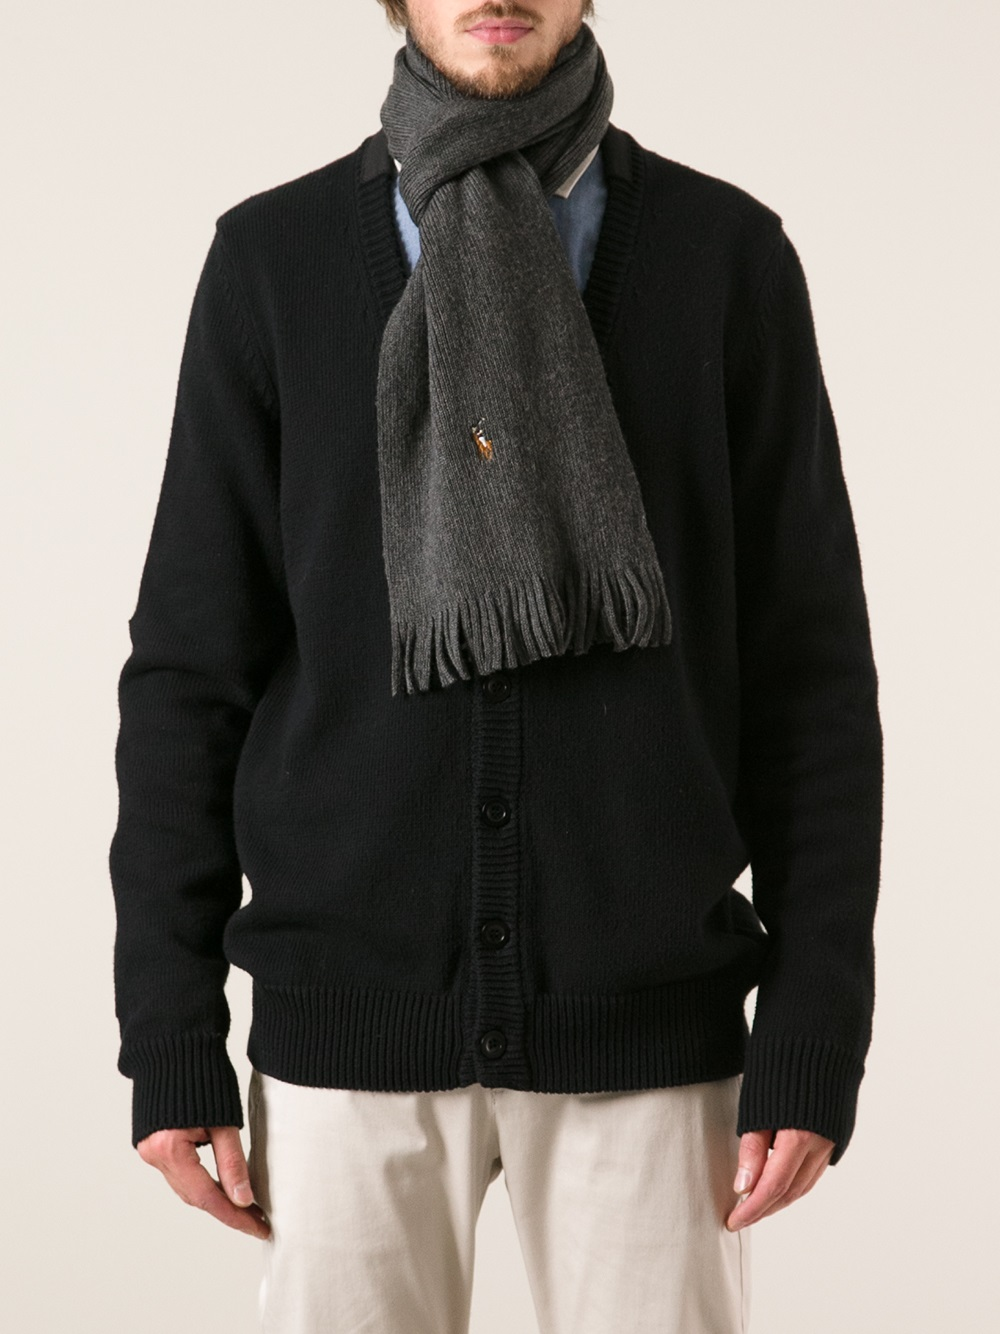 4efecffded6 ... usa lyst polo ralph lauren ribbed scarf and hat set in gray for men  ca3e4 0f497